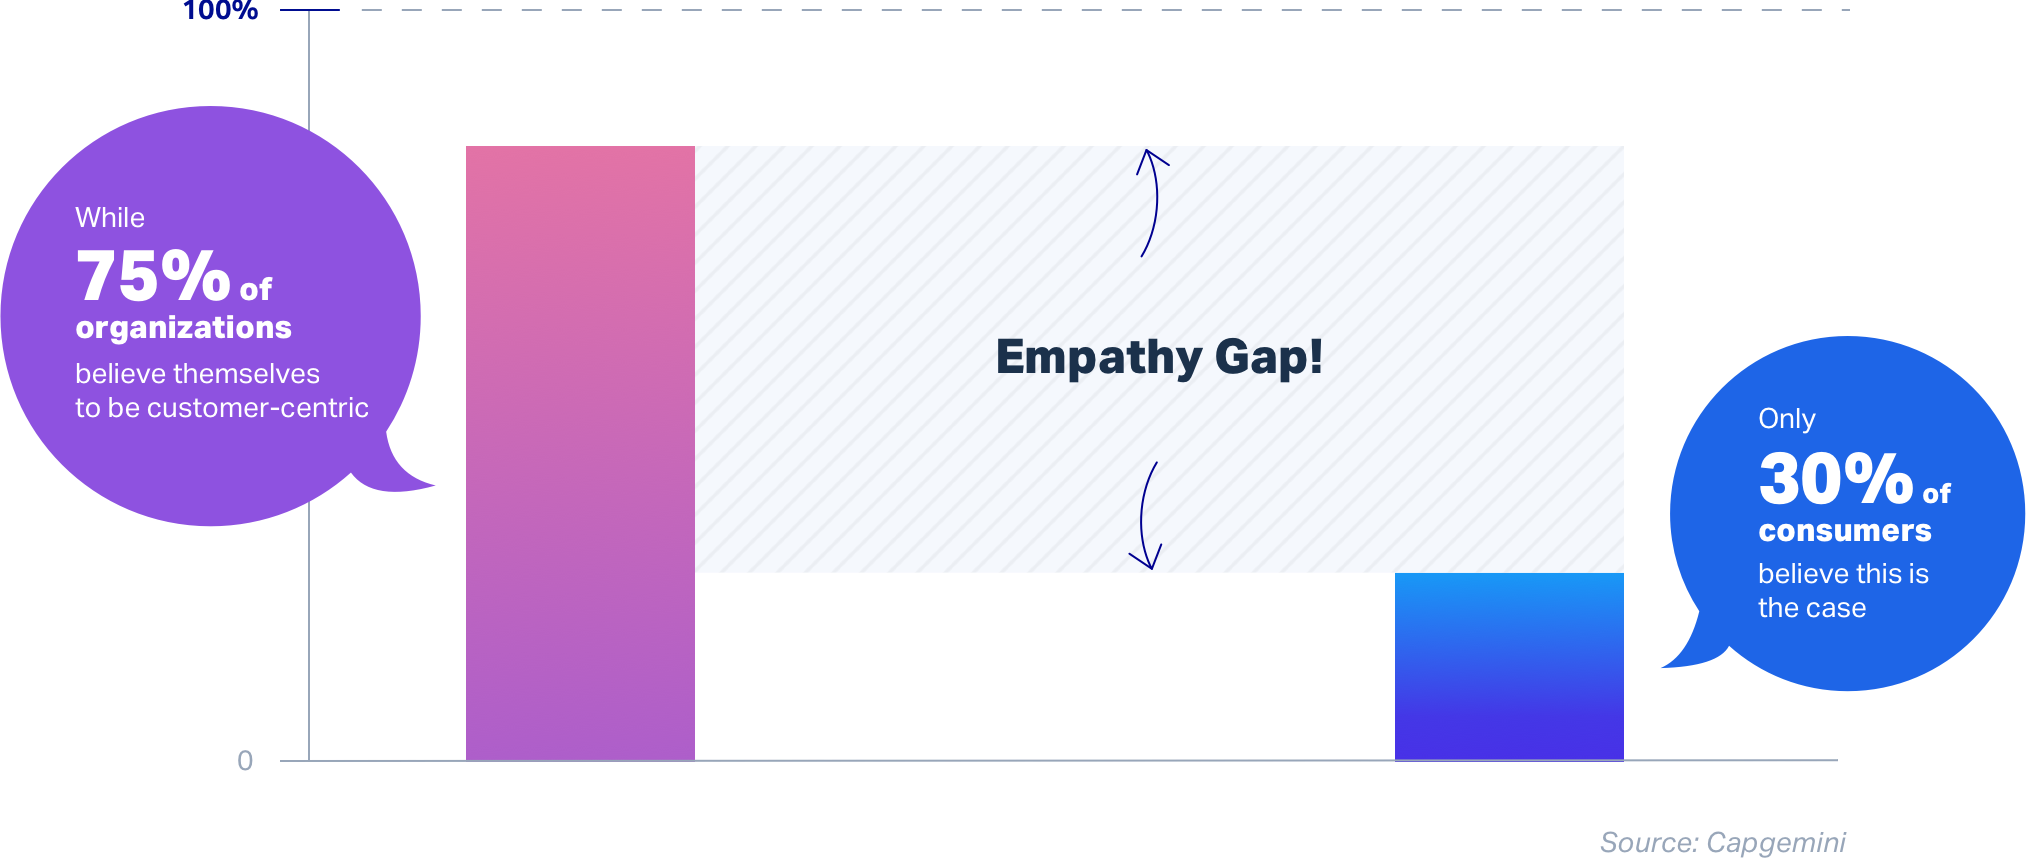 UserTesting empathy gap